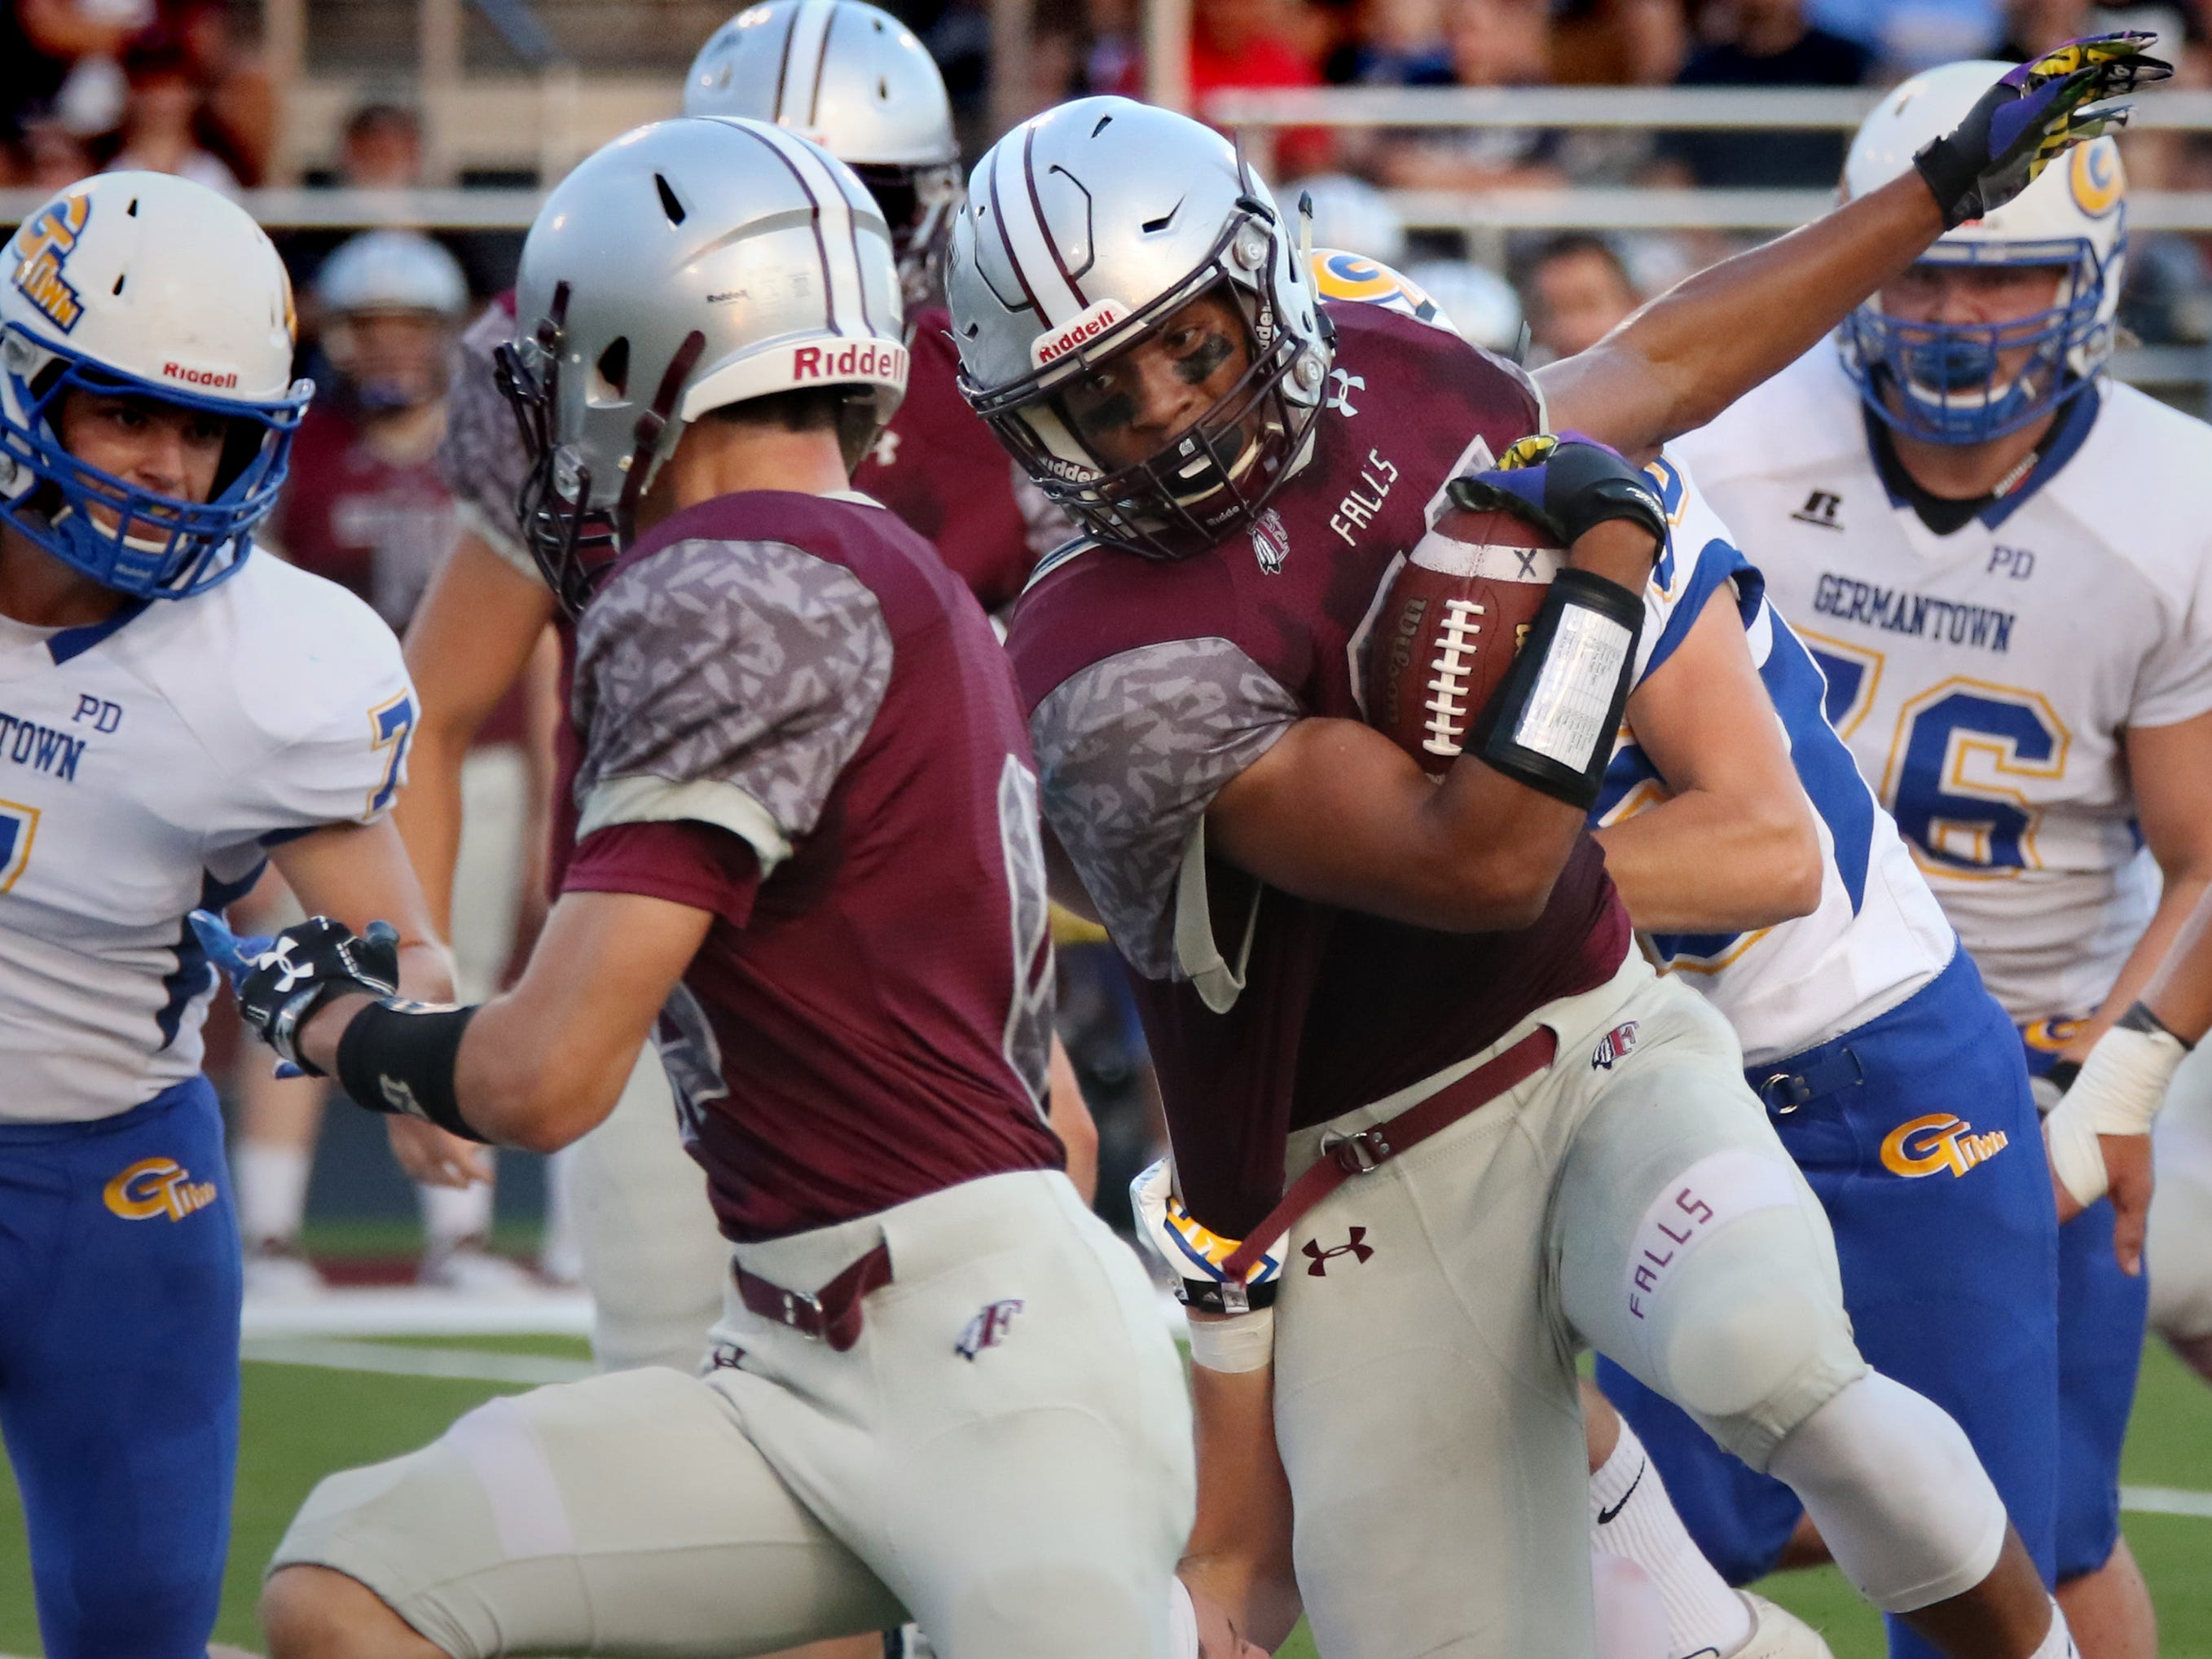 Menomonee Falls running back Julius Davis drives through the Germantown defense on Friday night. Davis, a Wisconsin Badgers recruit, finished with 33 carries for 334 yards and three touchdowns in the game.